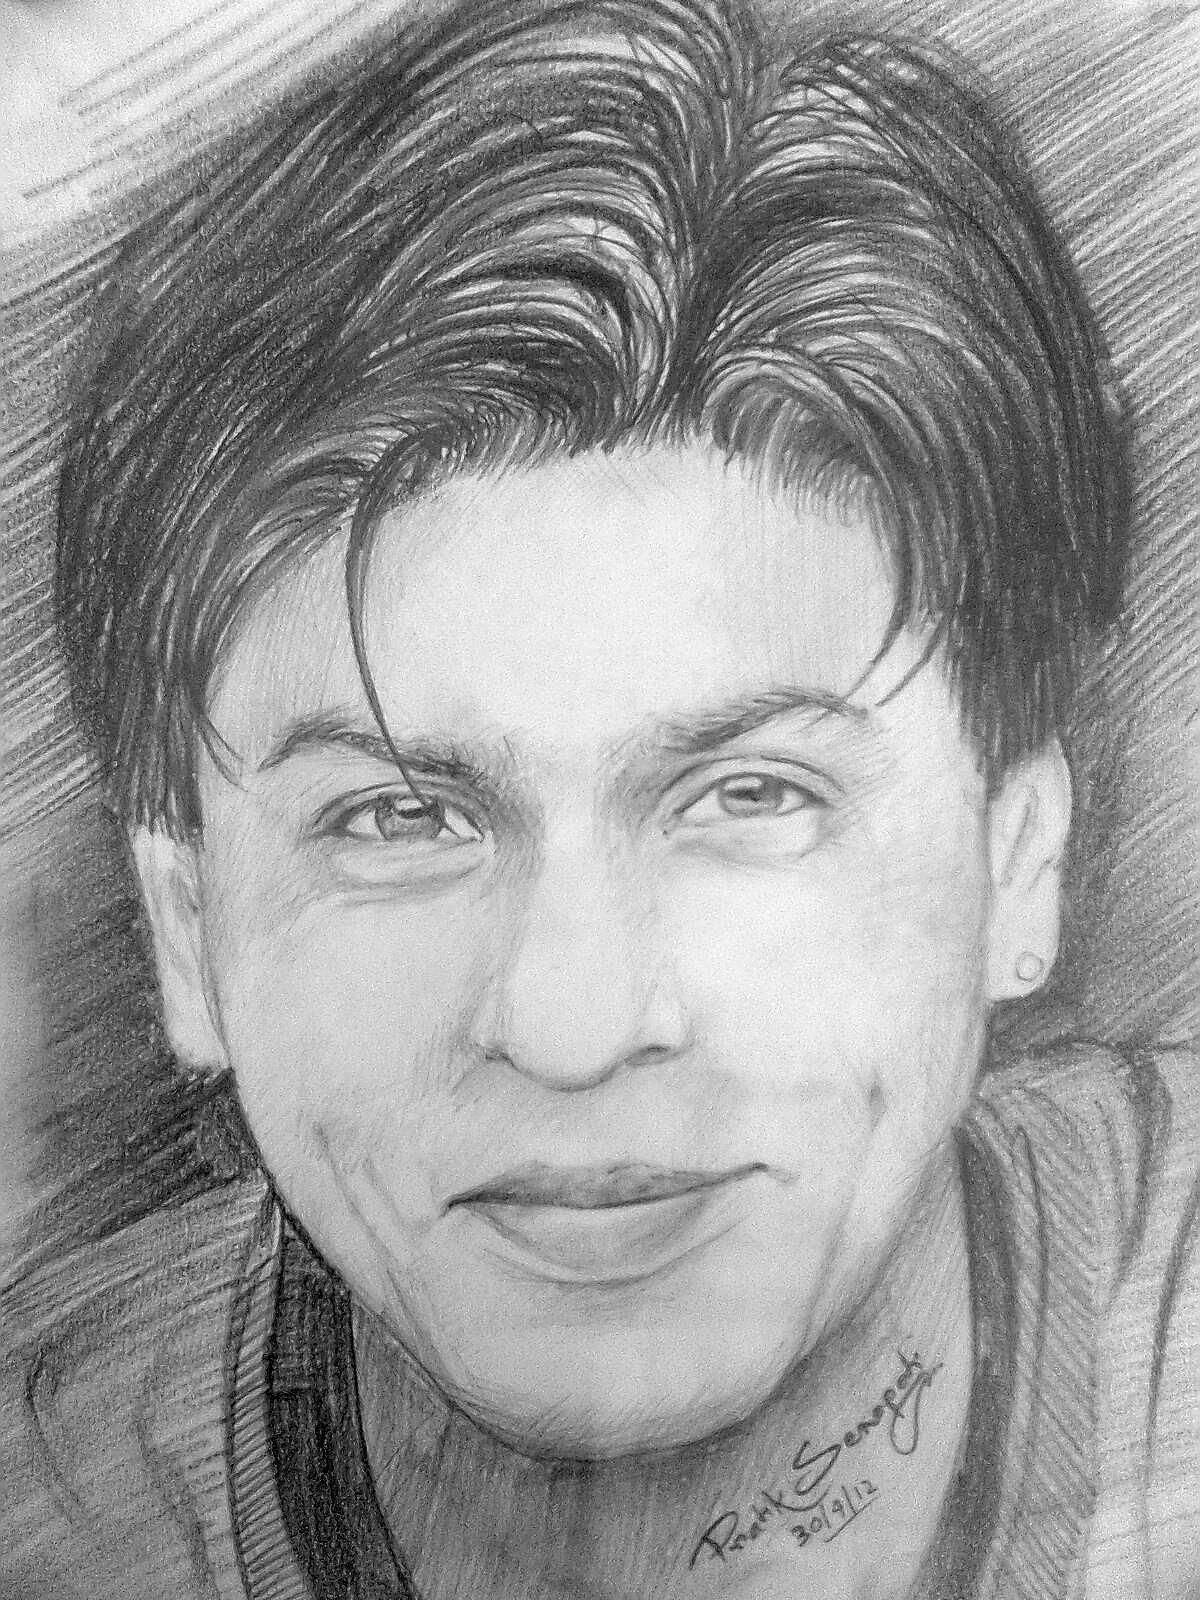 Shahrukh khan pencil art drawings pencil sketch drawing love drawings drawing pictures